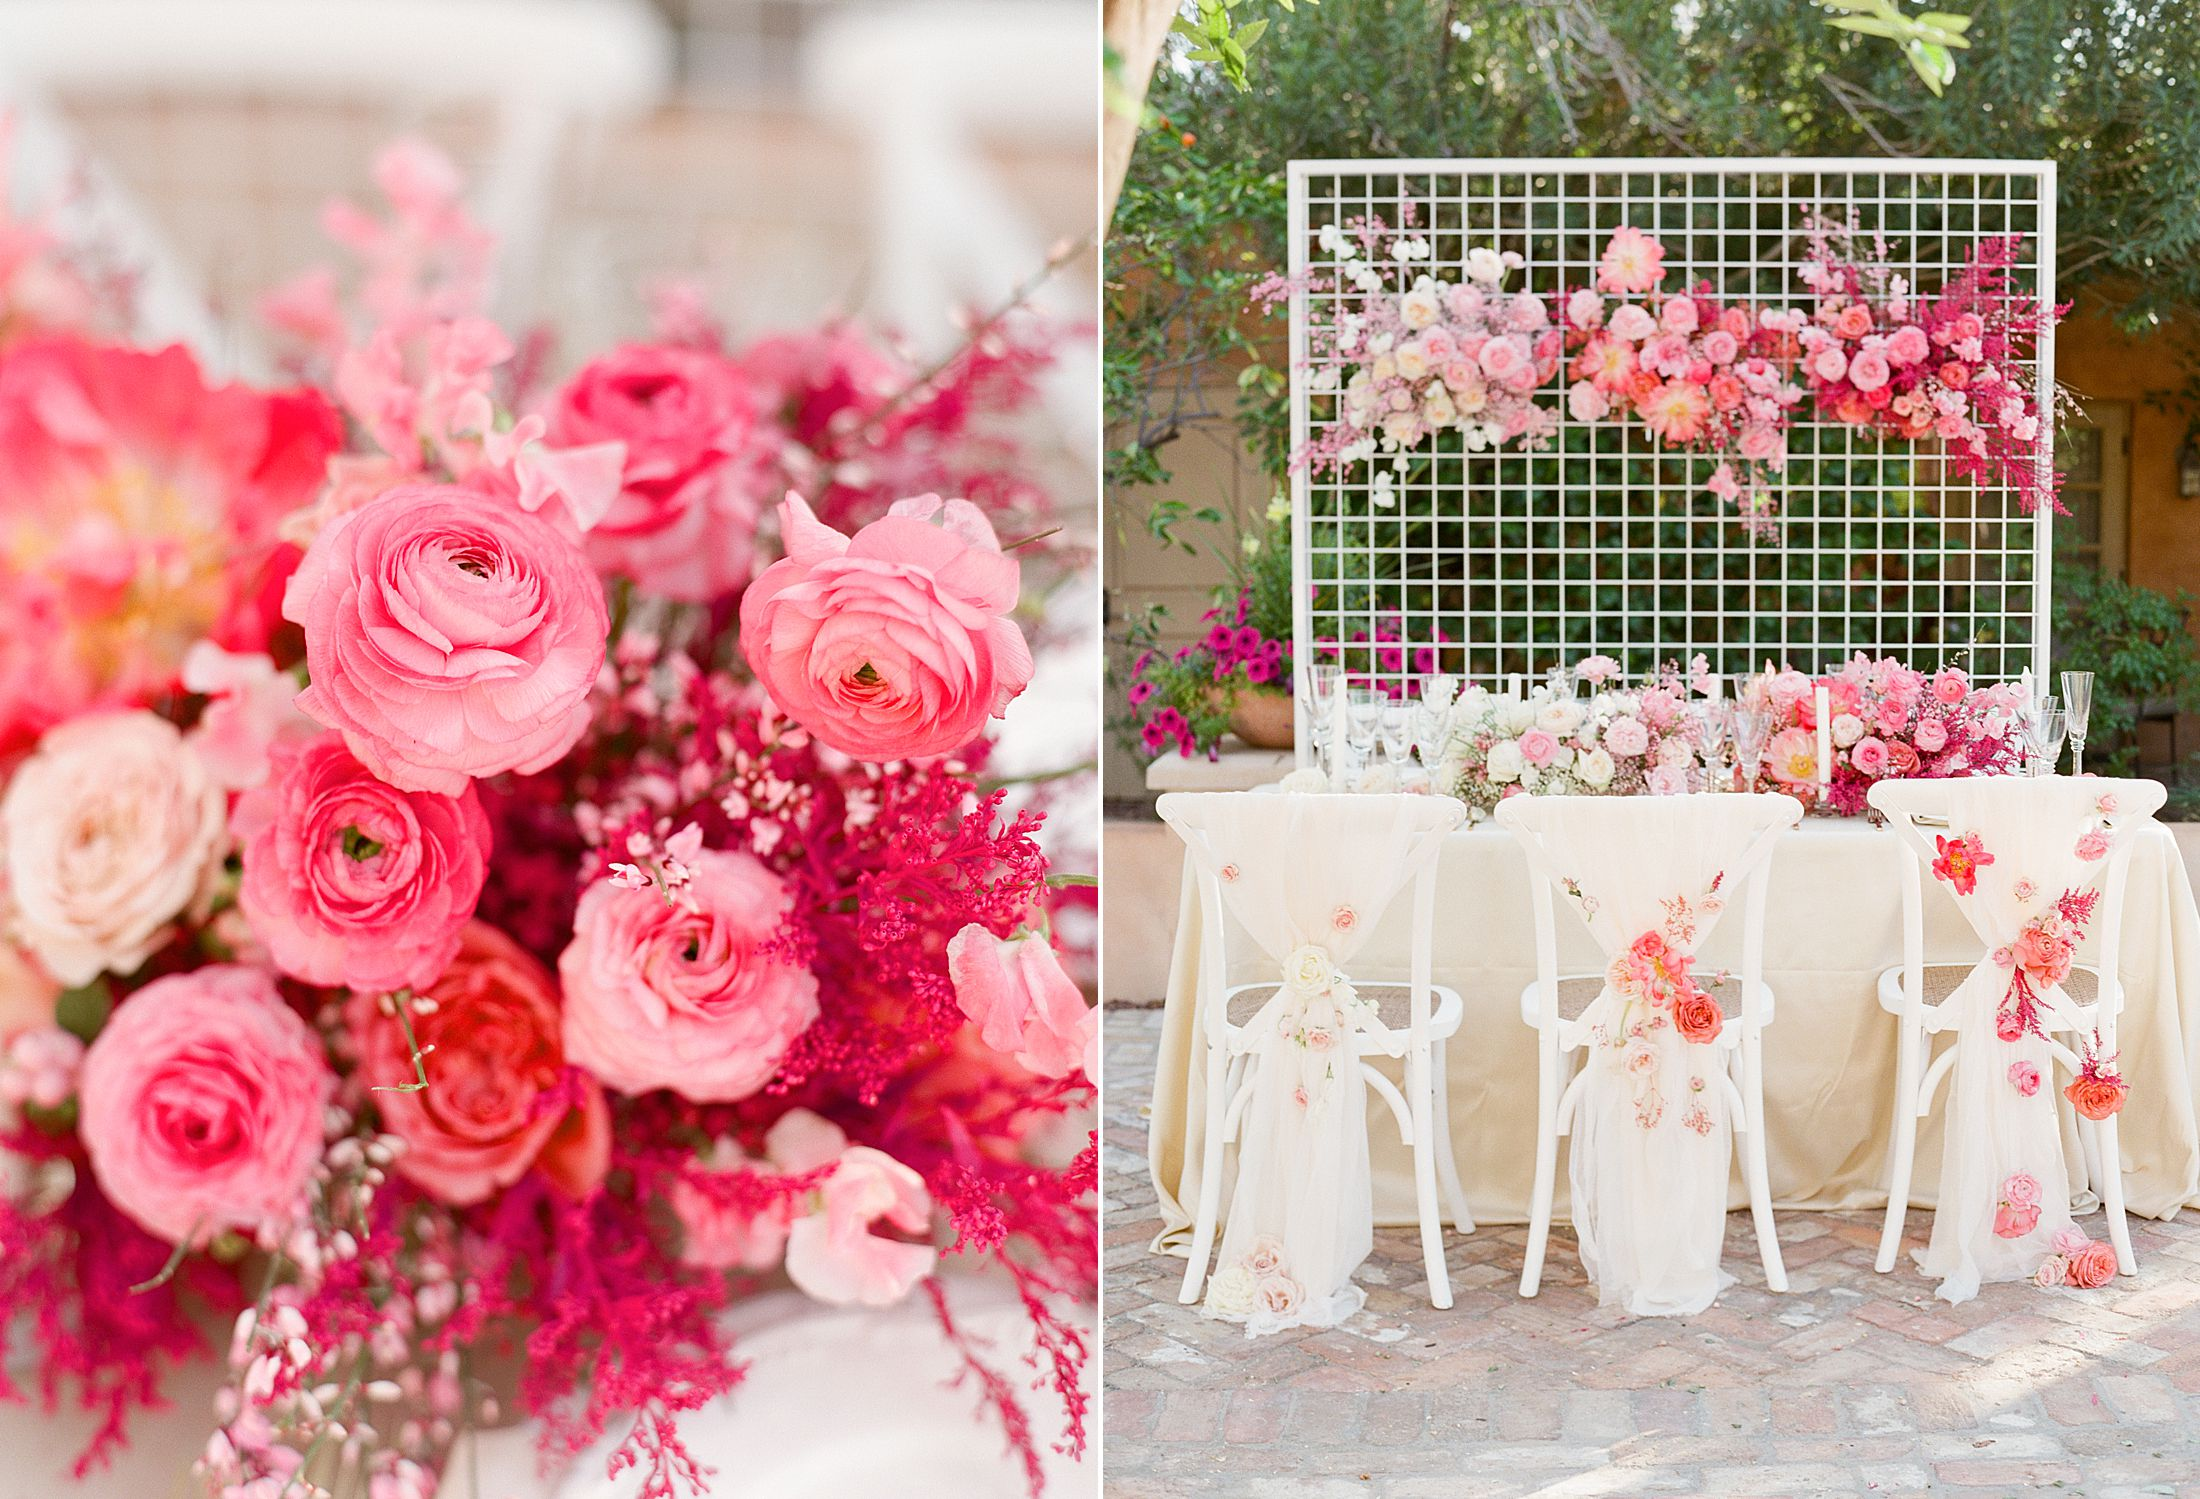 Pink Ombre Wedding Inspiration on Style Me Pretty - Royal Palms Wedding - Scottsdale Wedding - Ashley Baumgartner - Bloom and Blueprint - Wedding Puppies - Bulldog Puppies_0018.jpg